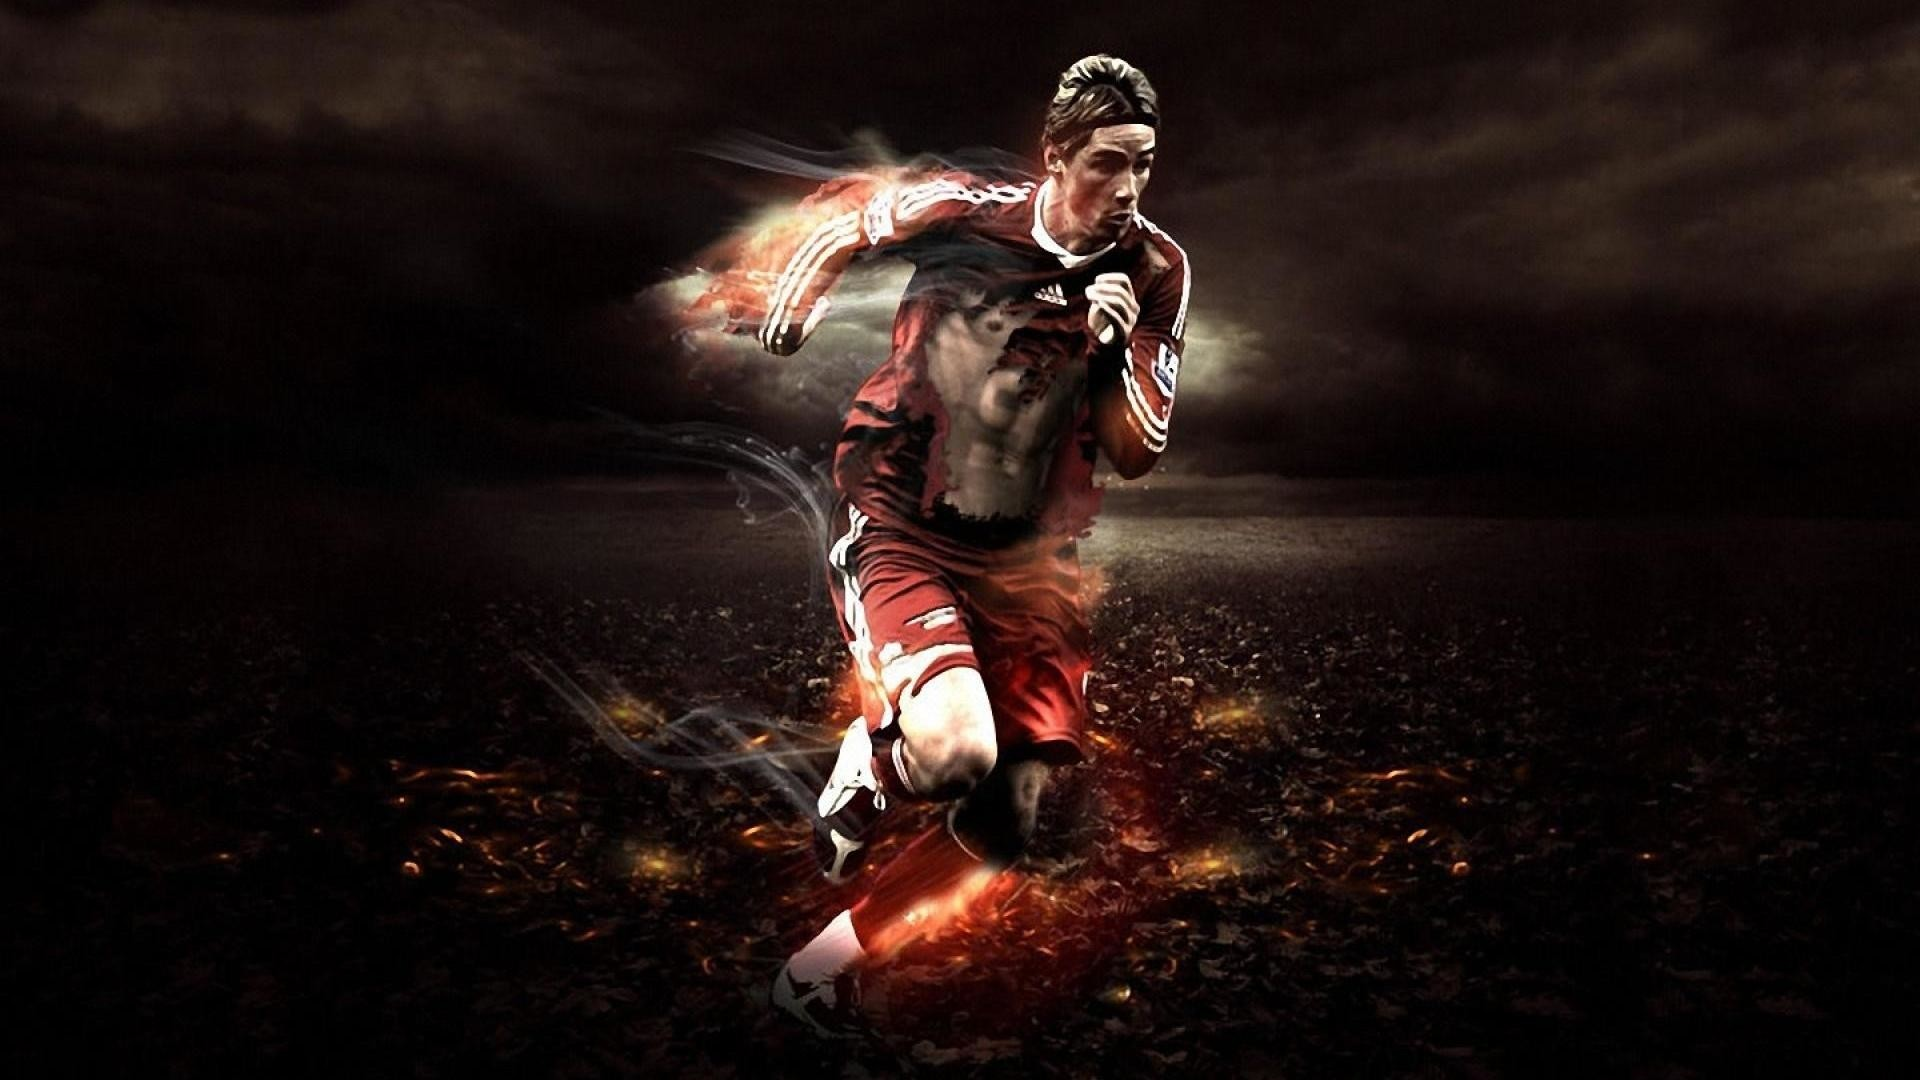 Cool soccer players pictures